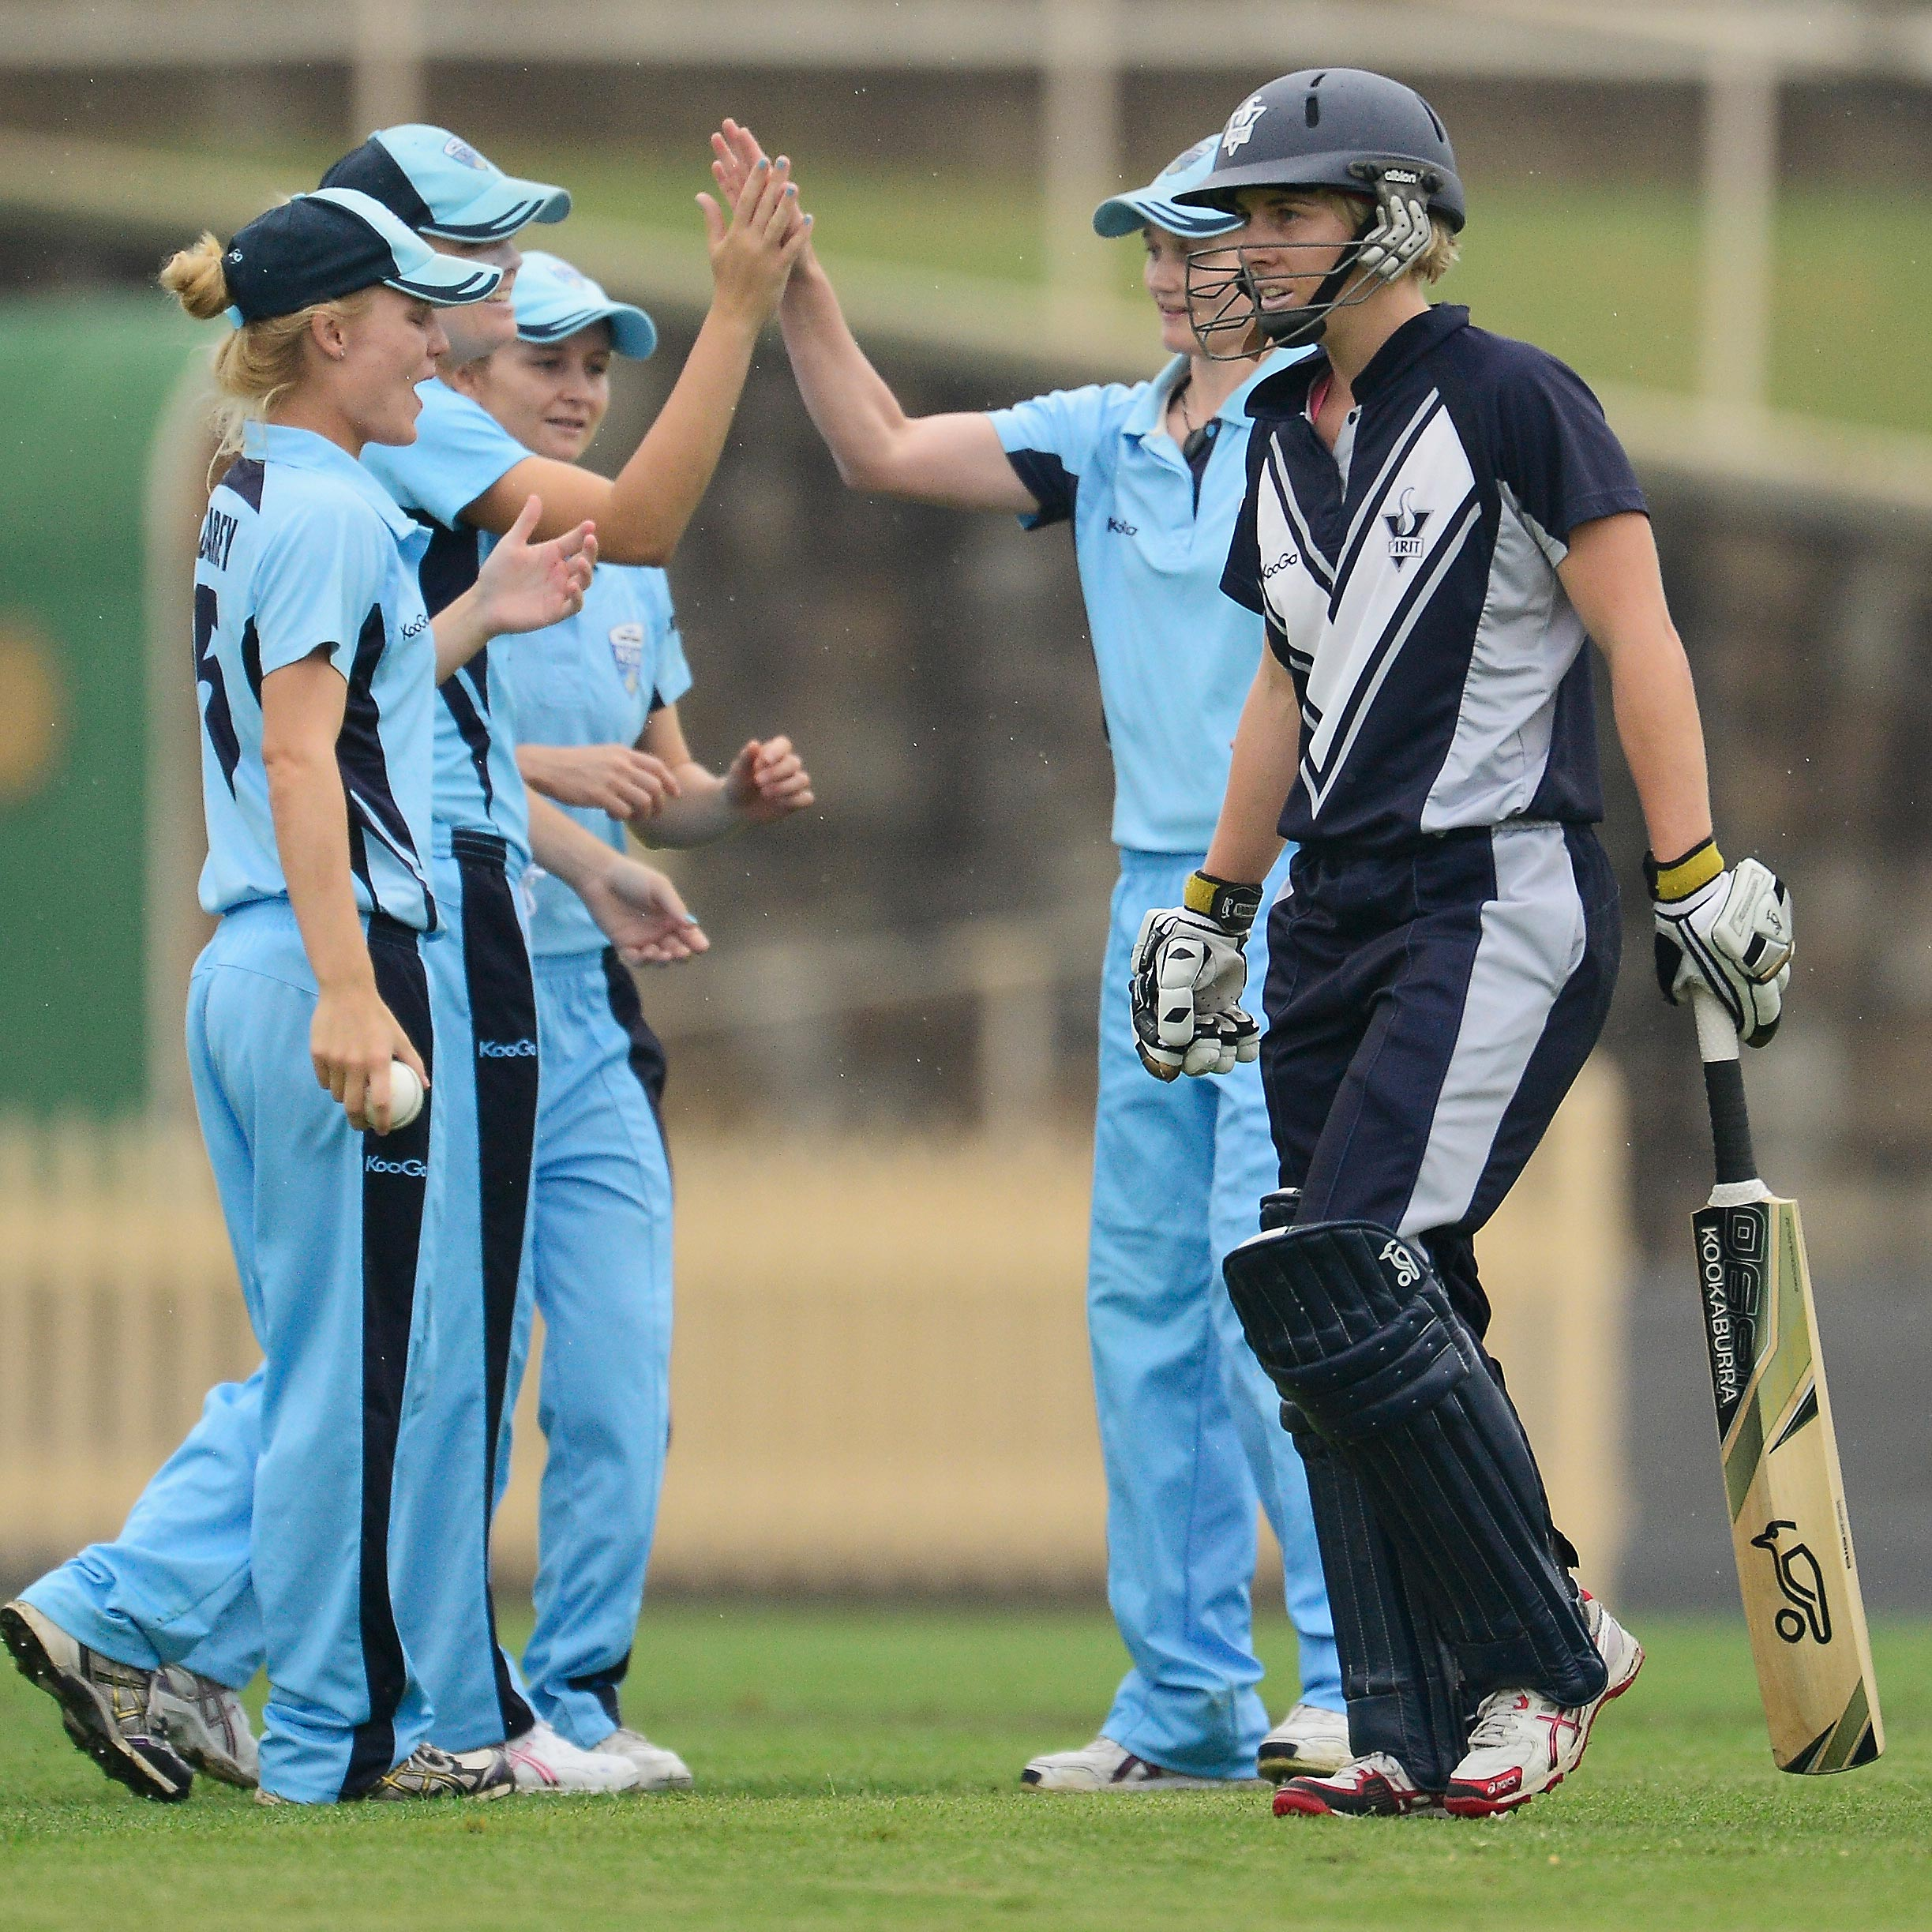 Victoria's Elyse Villani is dismissed against NSW // Getty